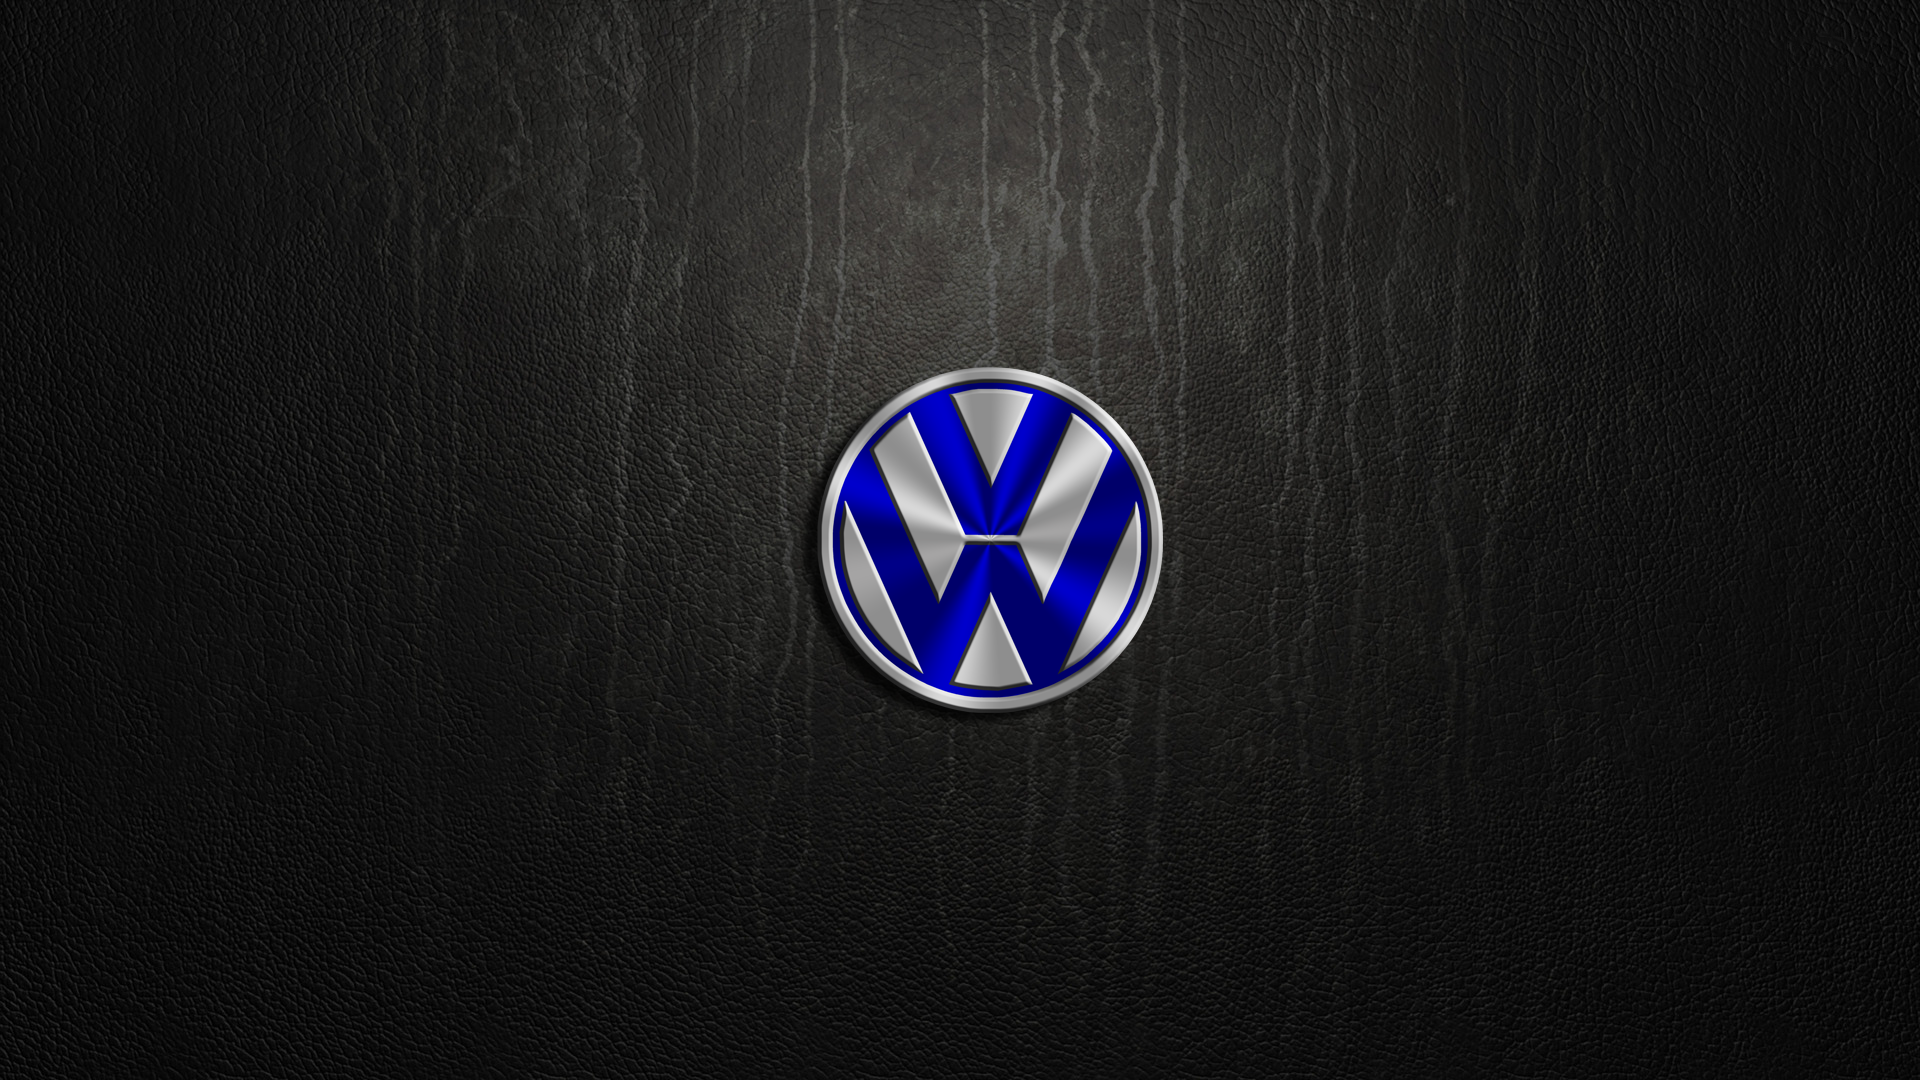 308 Volkswagen HD Wallpapers | Backgrounds - Wallpaper Abyss